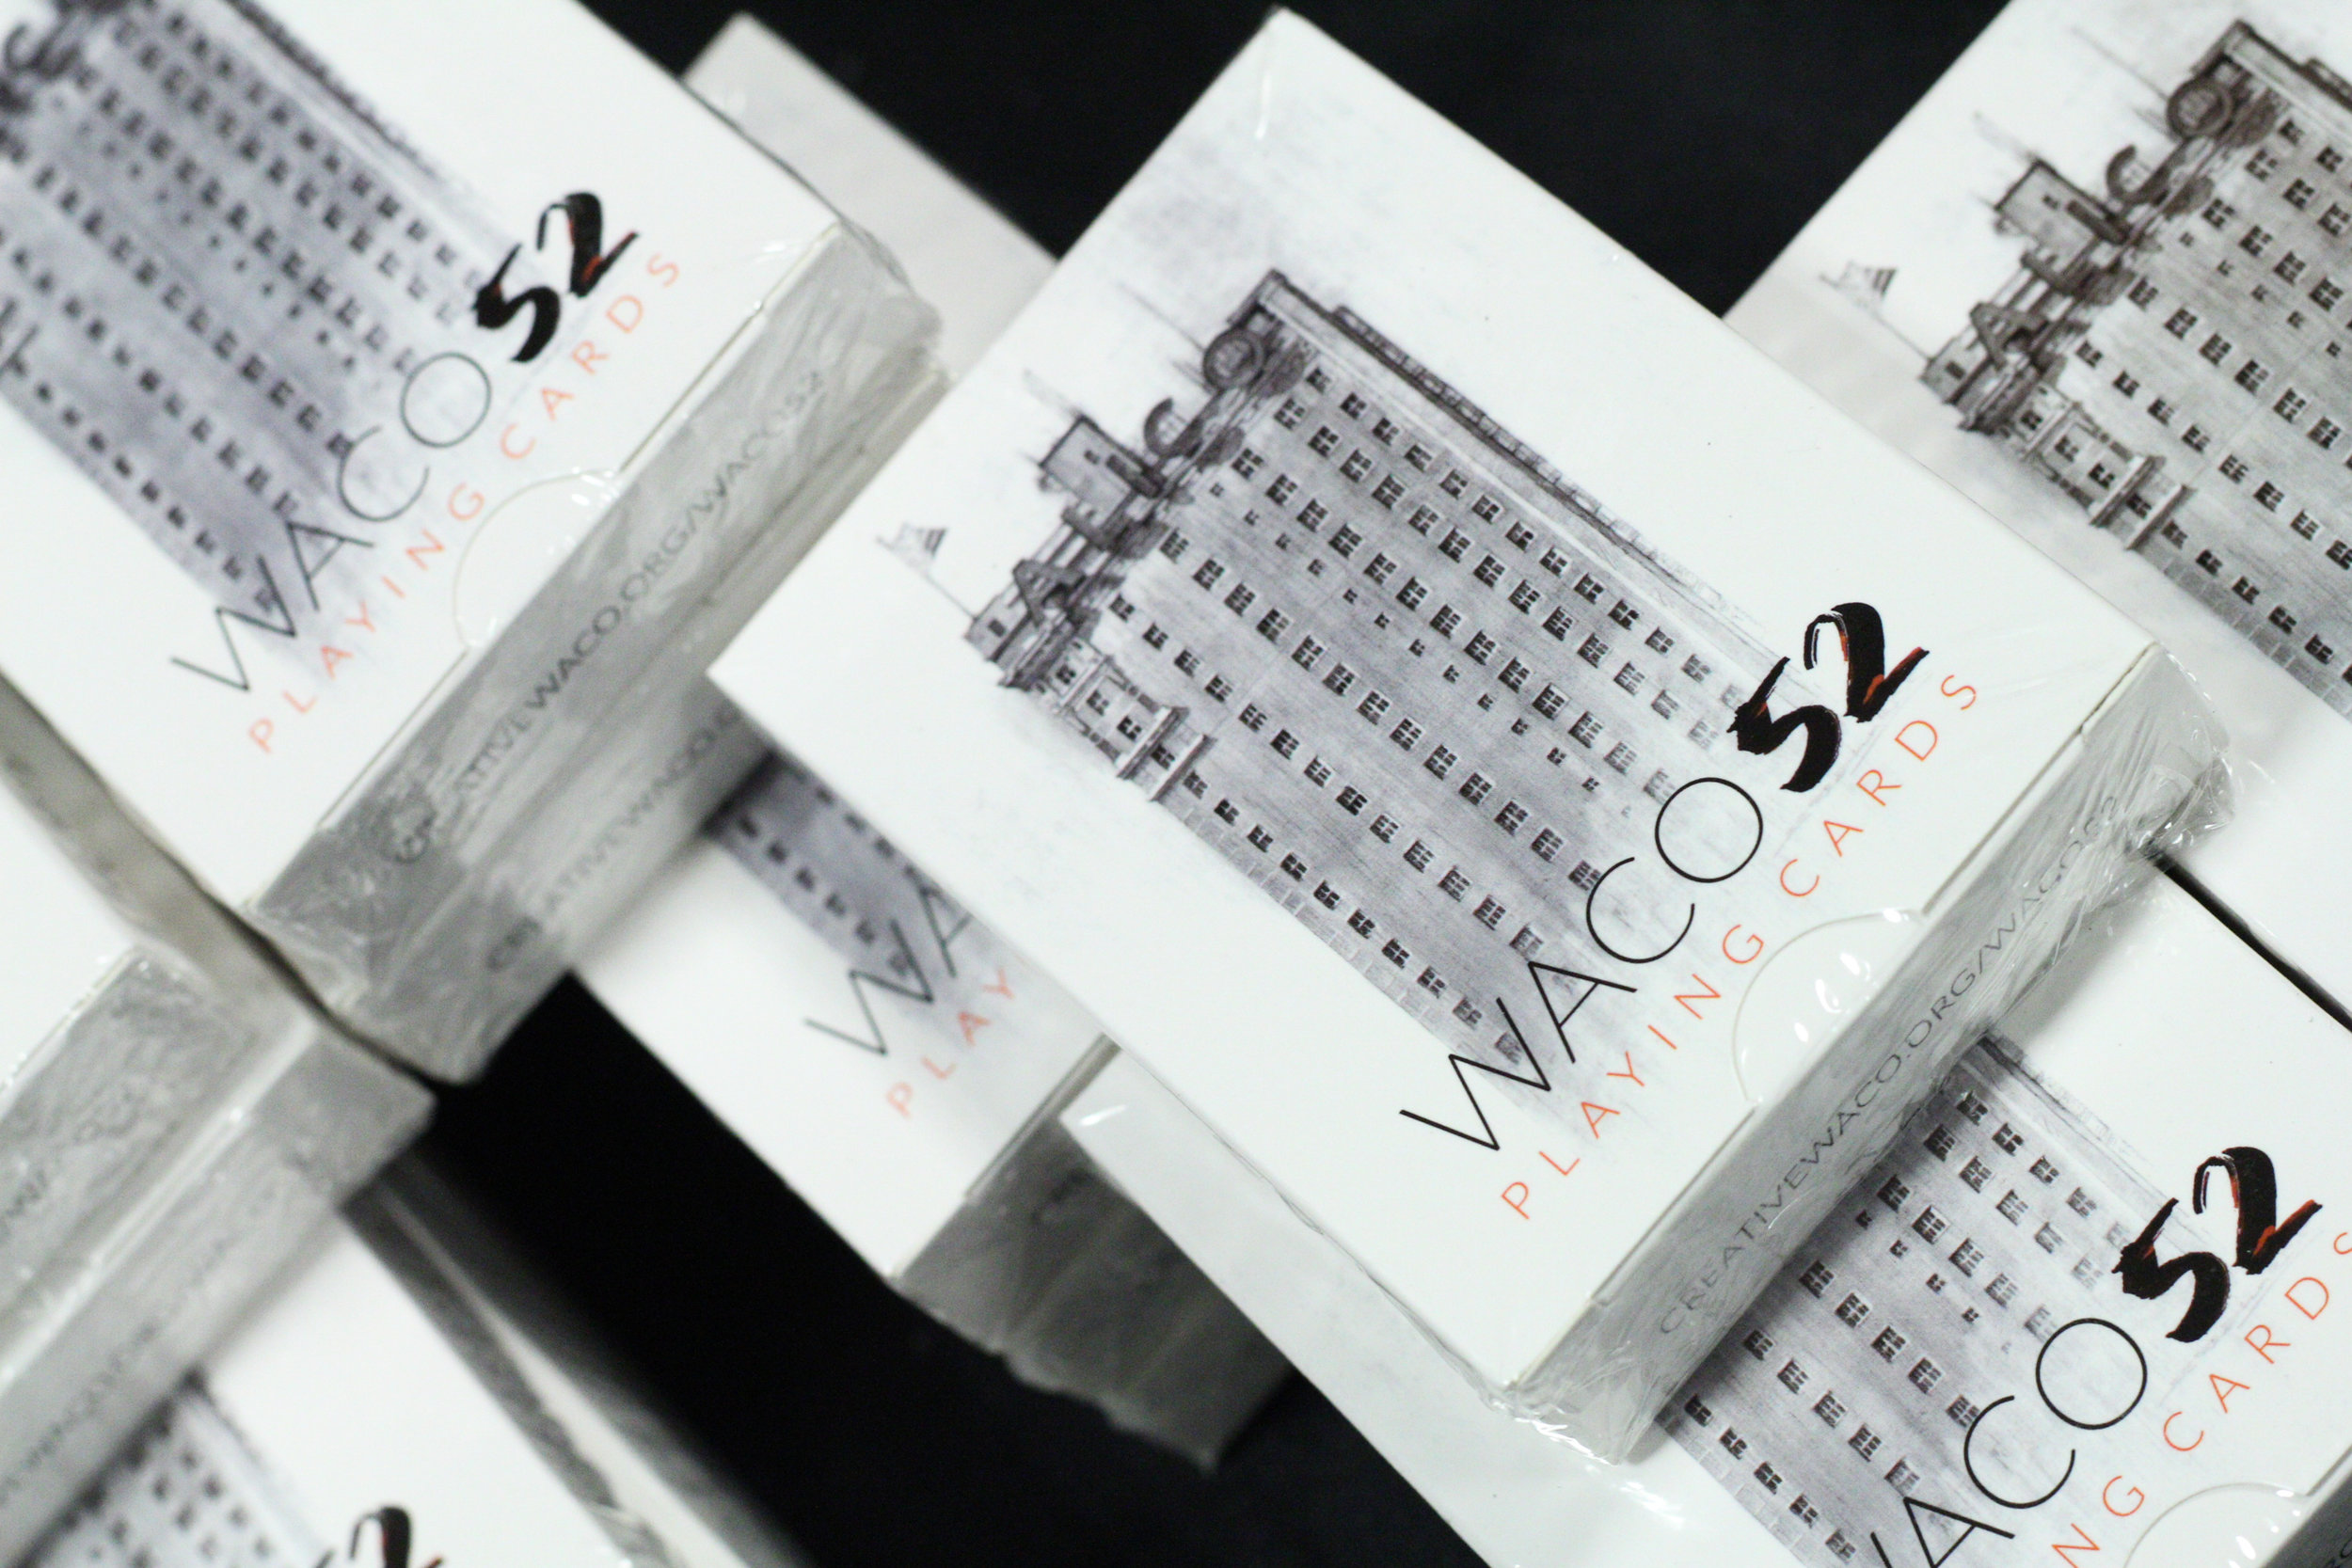 Decks of Waco 52 playing cards.